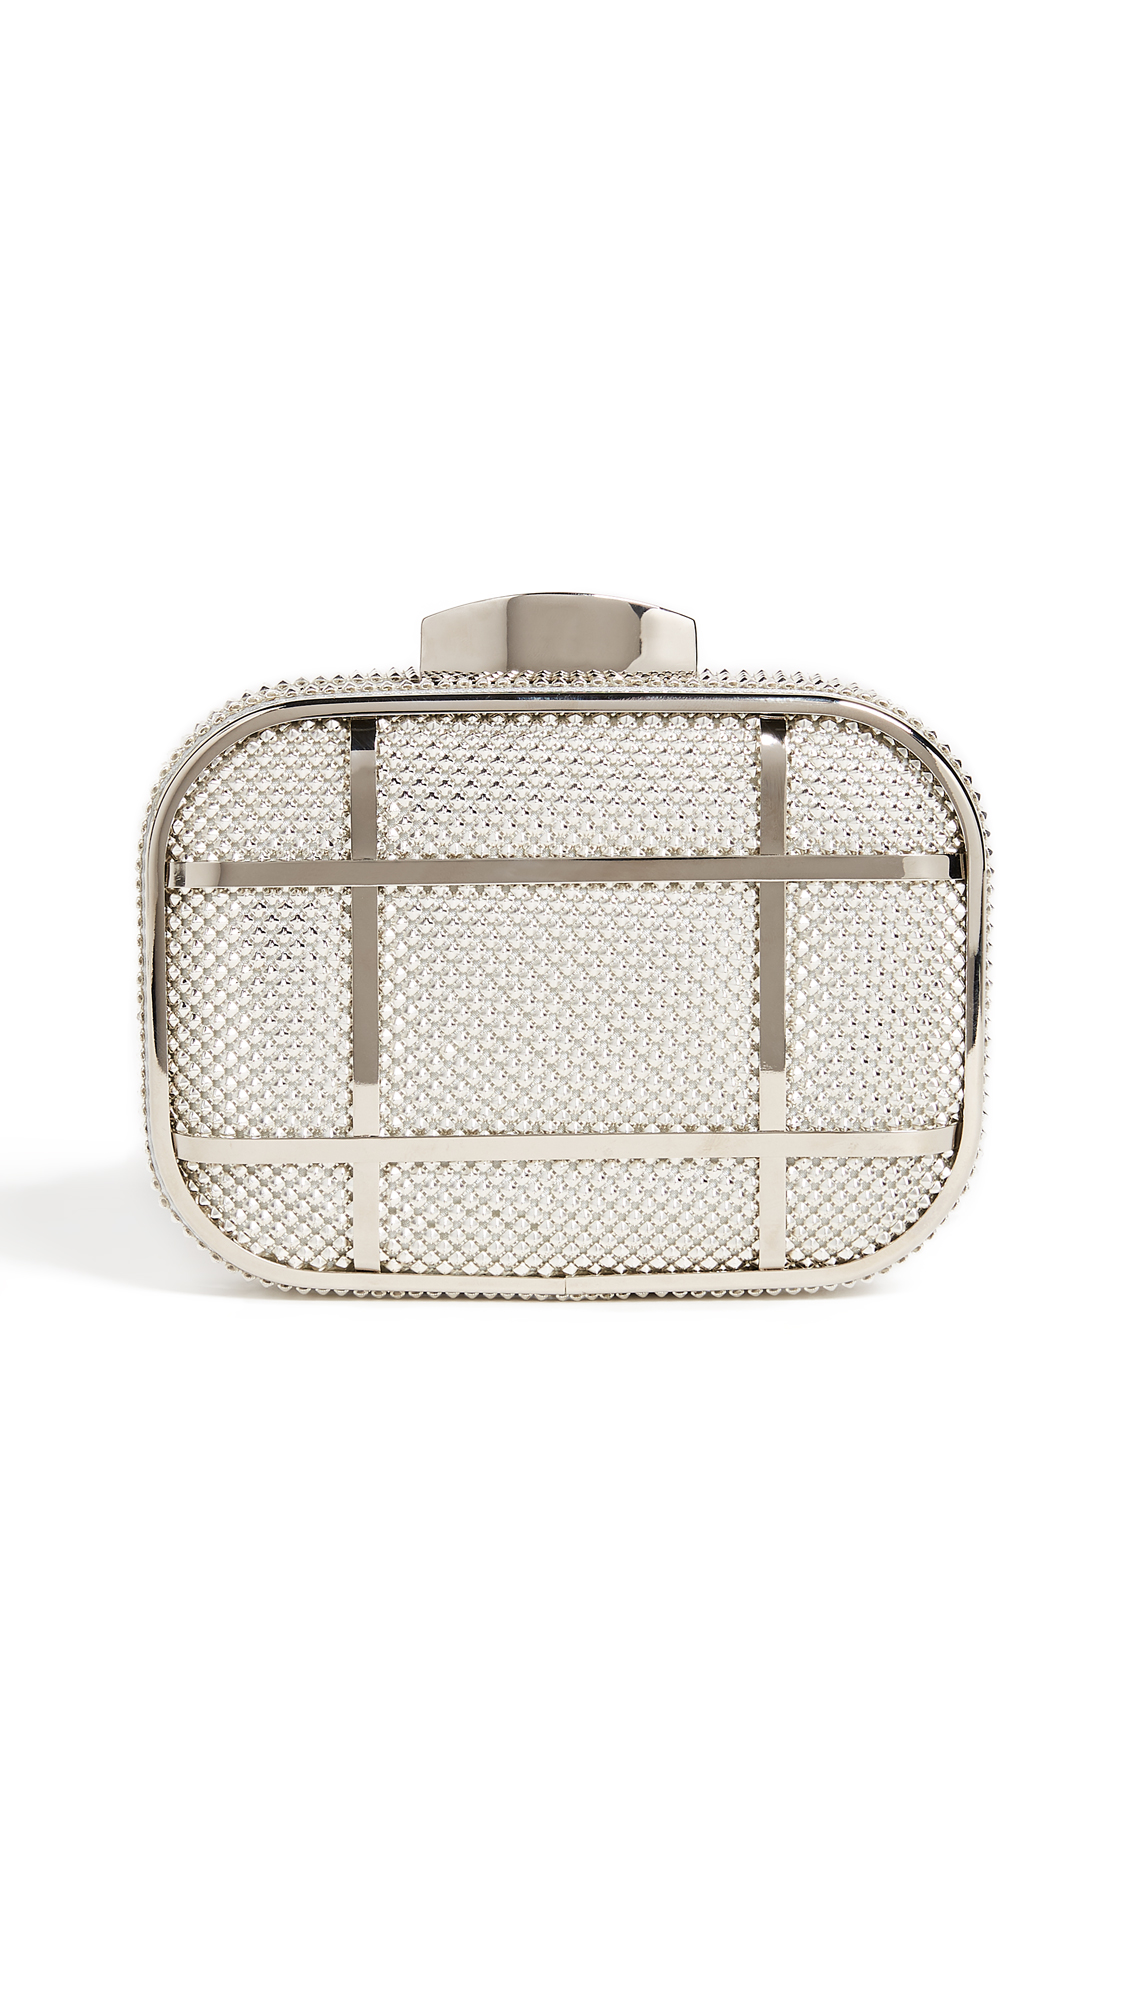 Whiting & Davis Cage Minaudiere Clutch - Silver